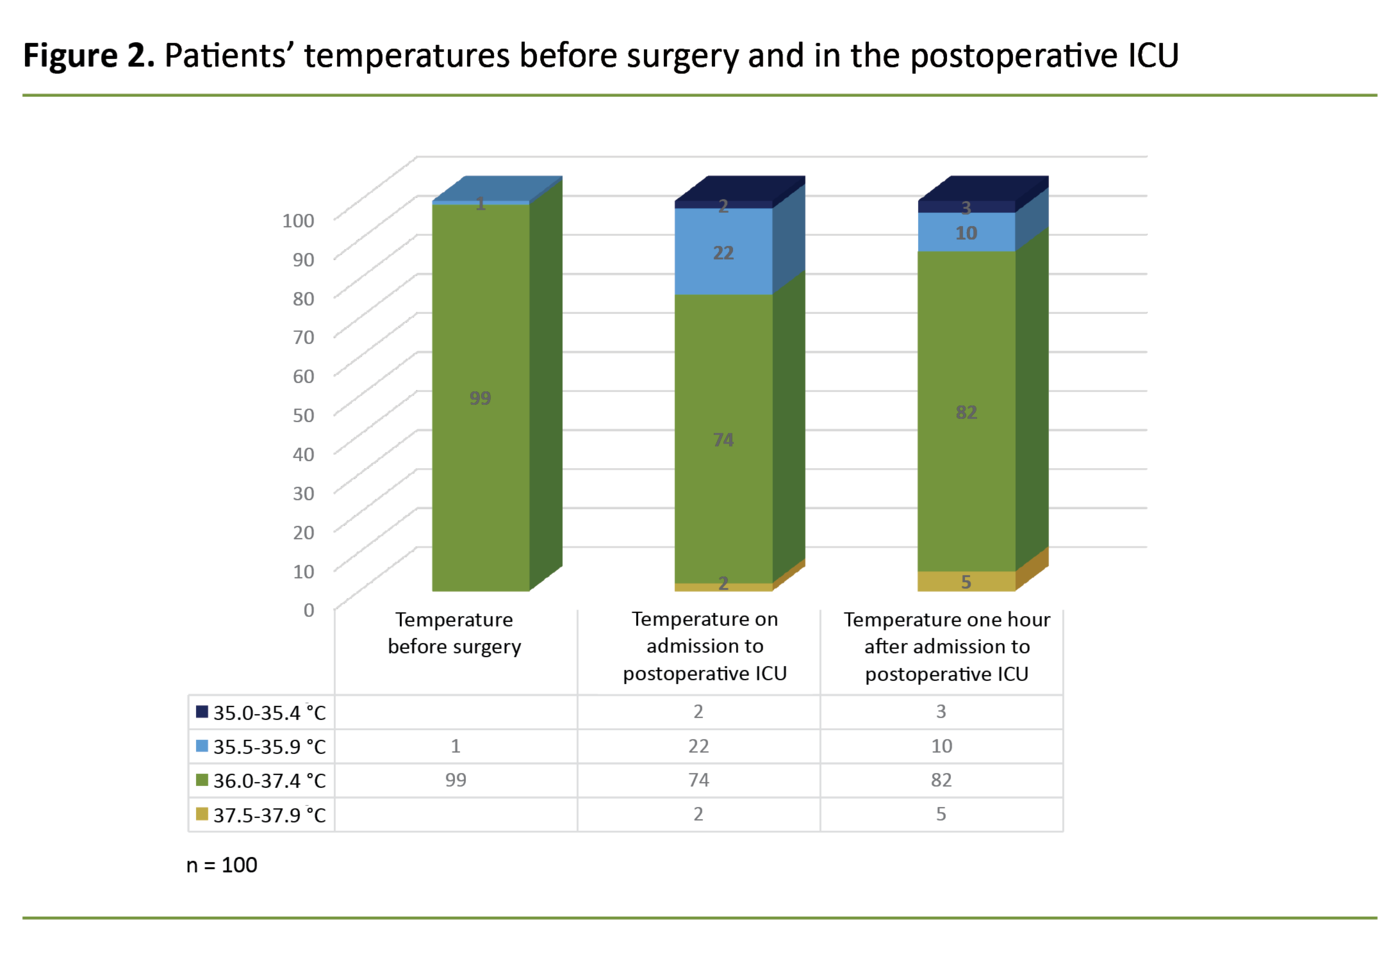 Figure 2. Patients' temperatures before surgery and in the postoperative ICU